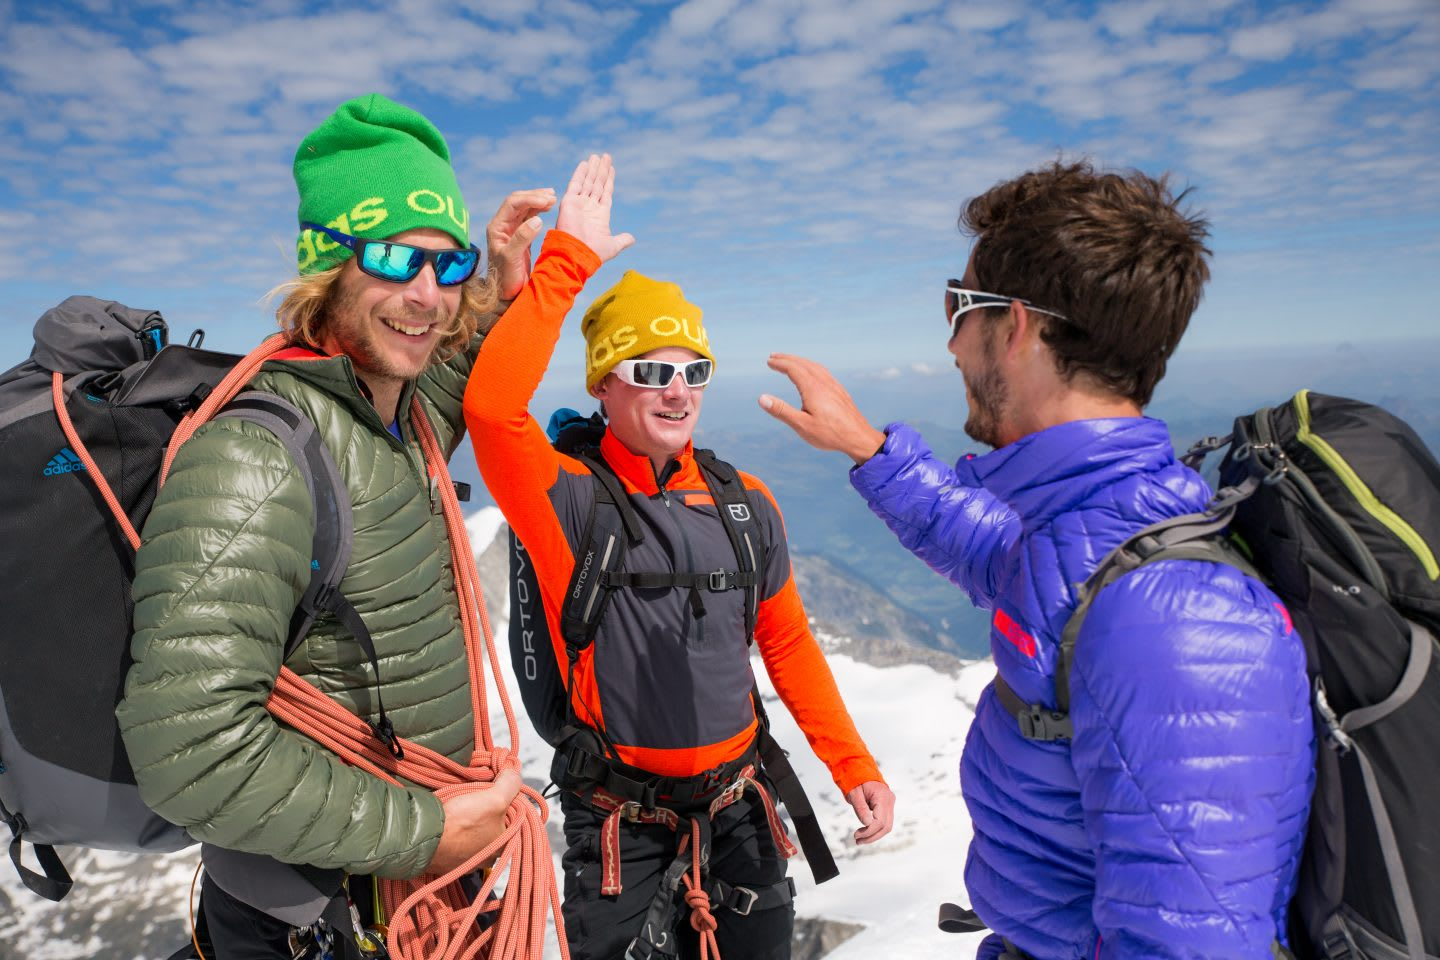 mountaineers-happy-high-five-hiking-mountains-alps-terrex-mountain project